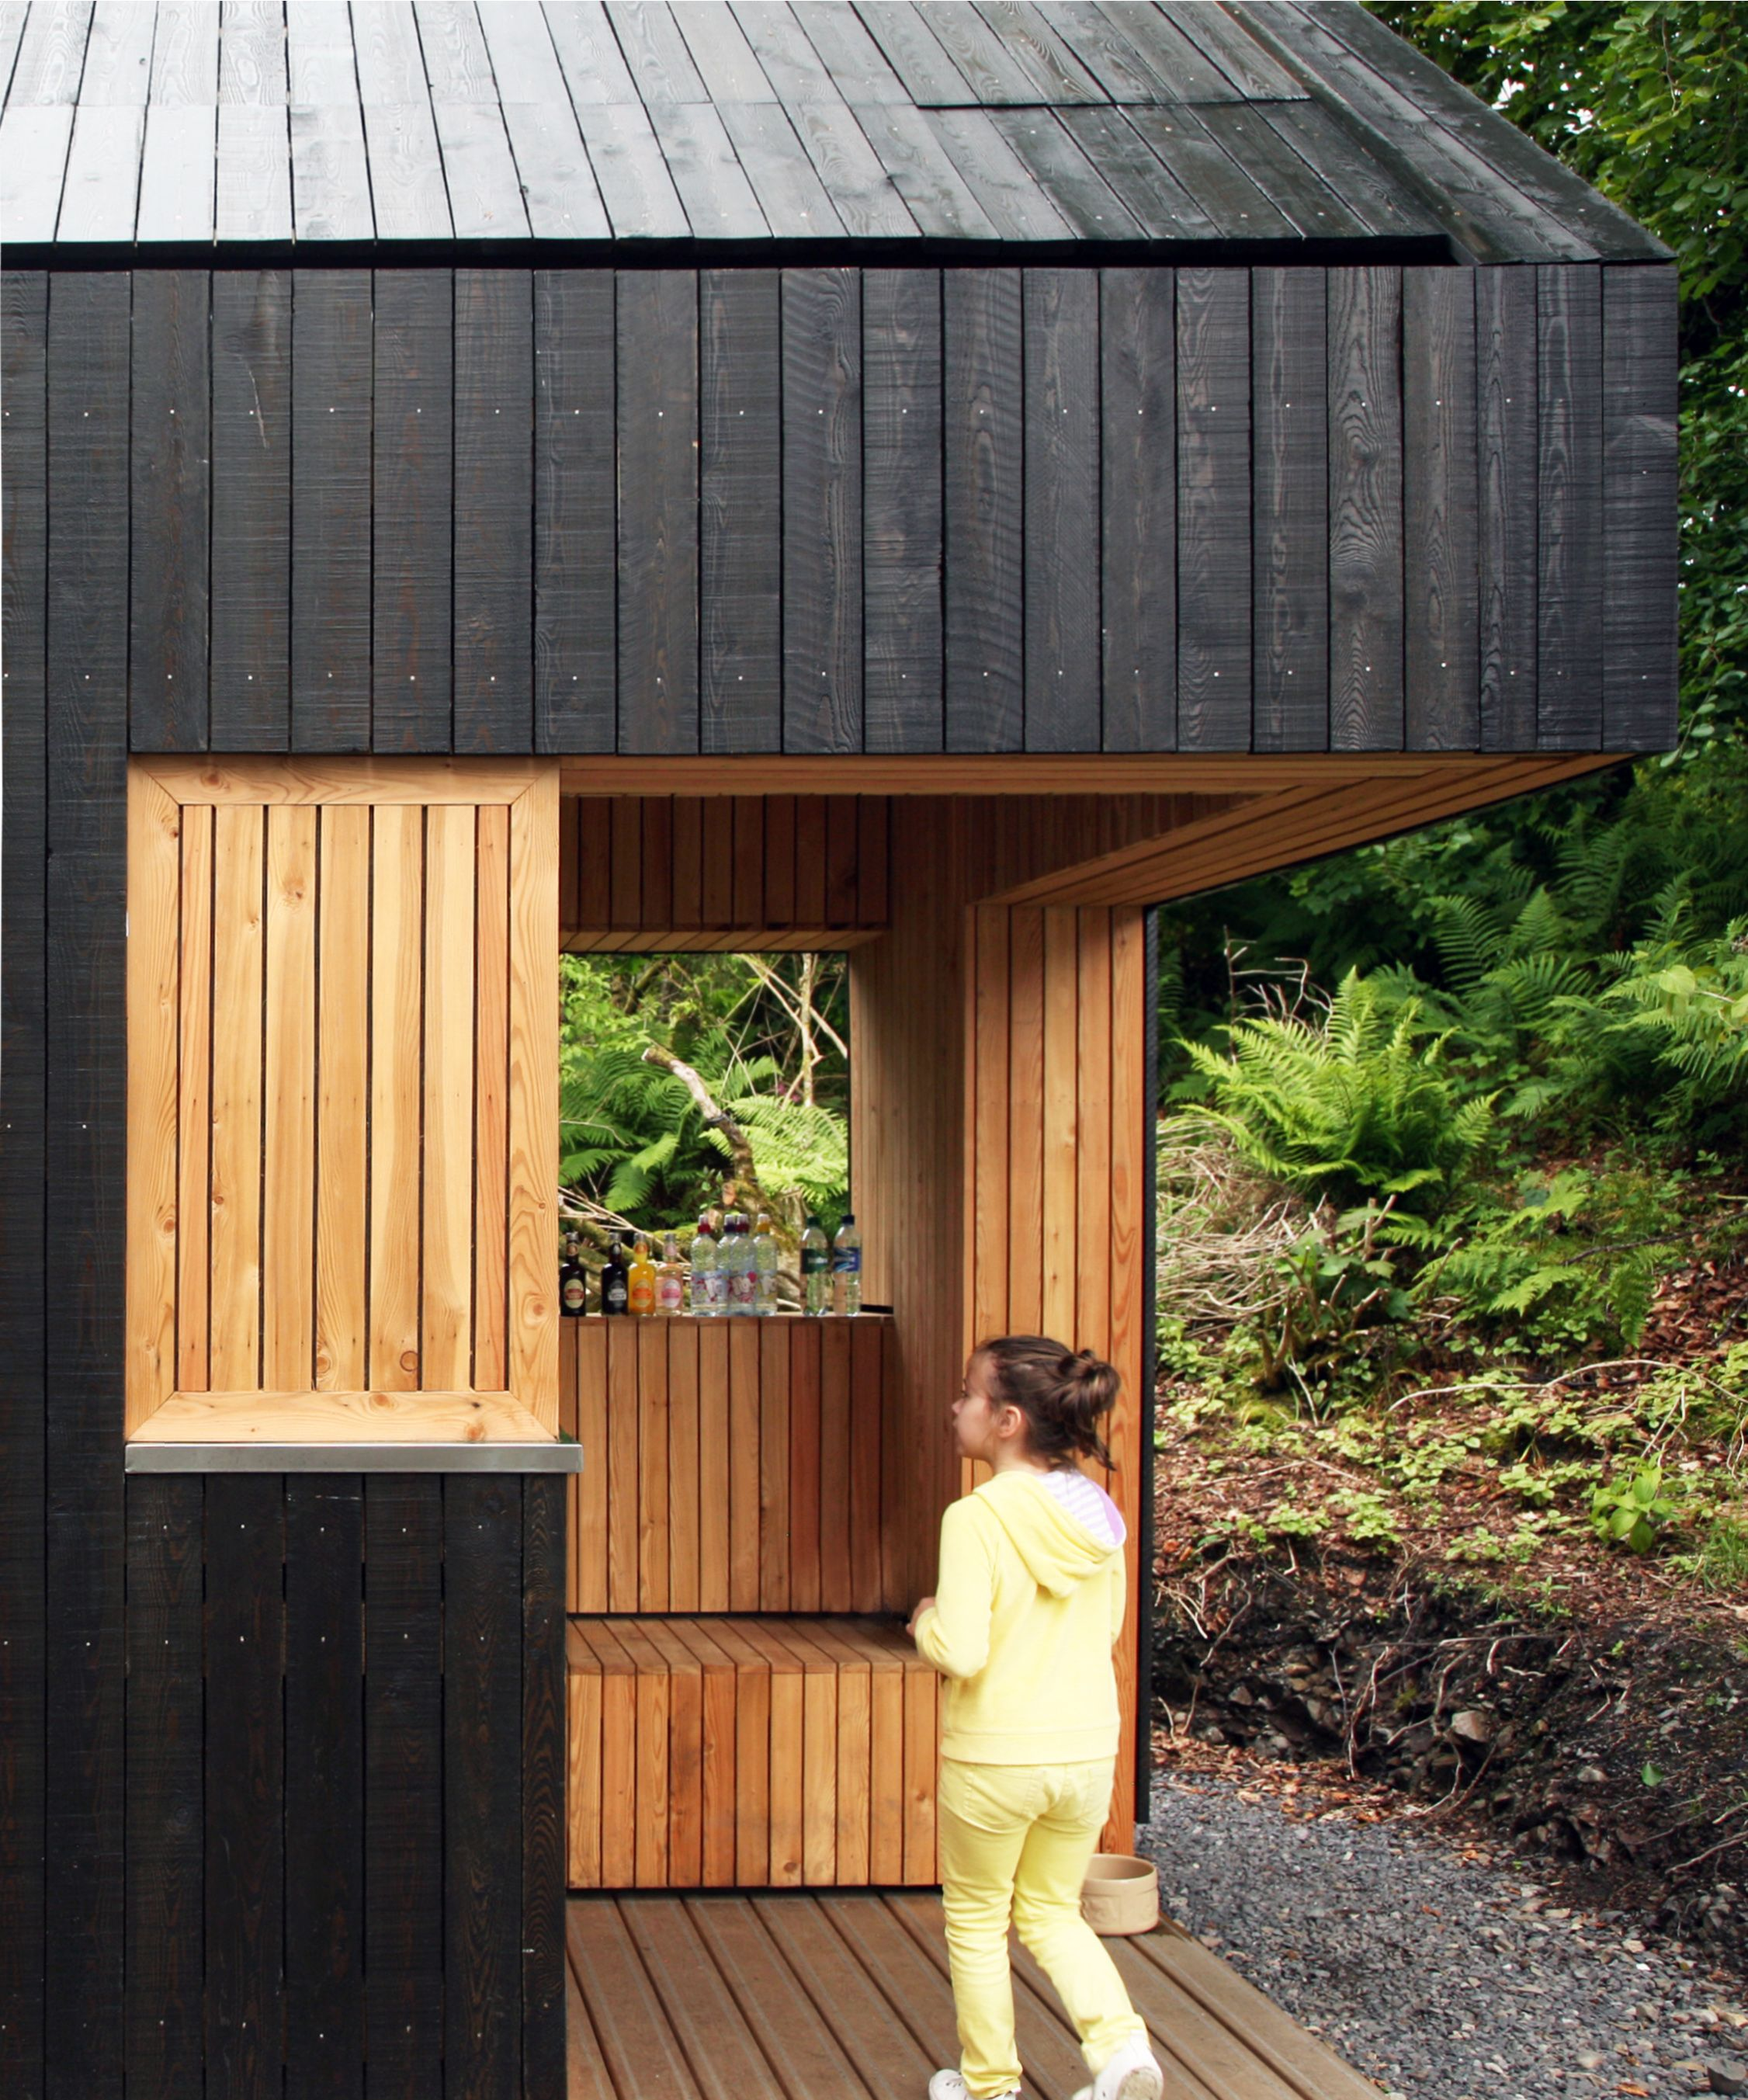 Russwood S Charred Larch Uses European Larch Timber Which Has Been Produced In A Controlled